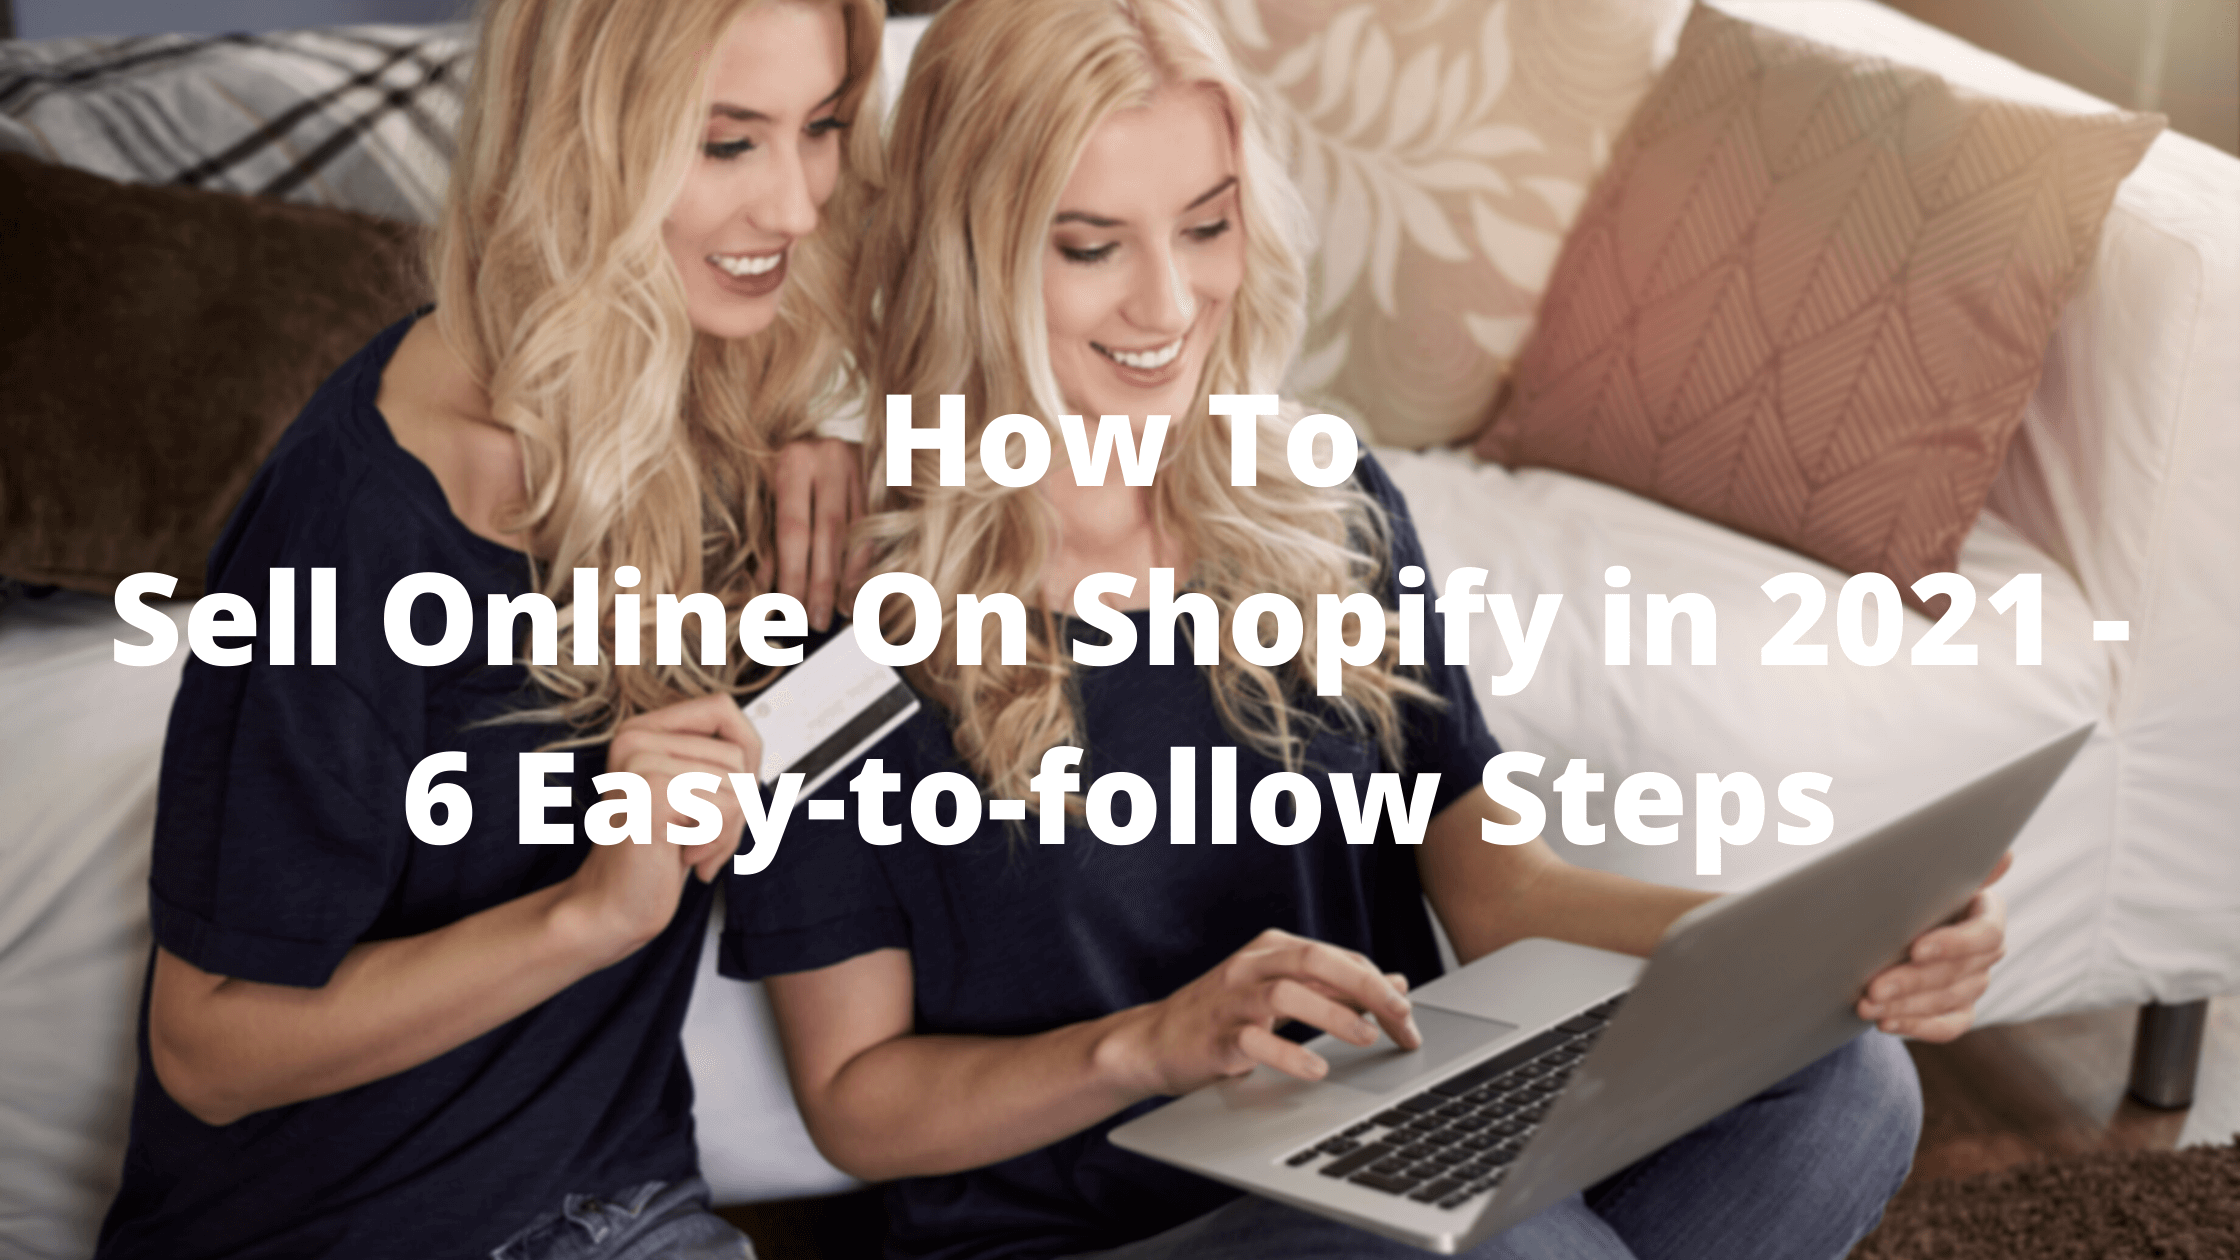 How To Sell Online On Shopify in 2021 | 6 Easy-to-follow Steps